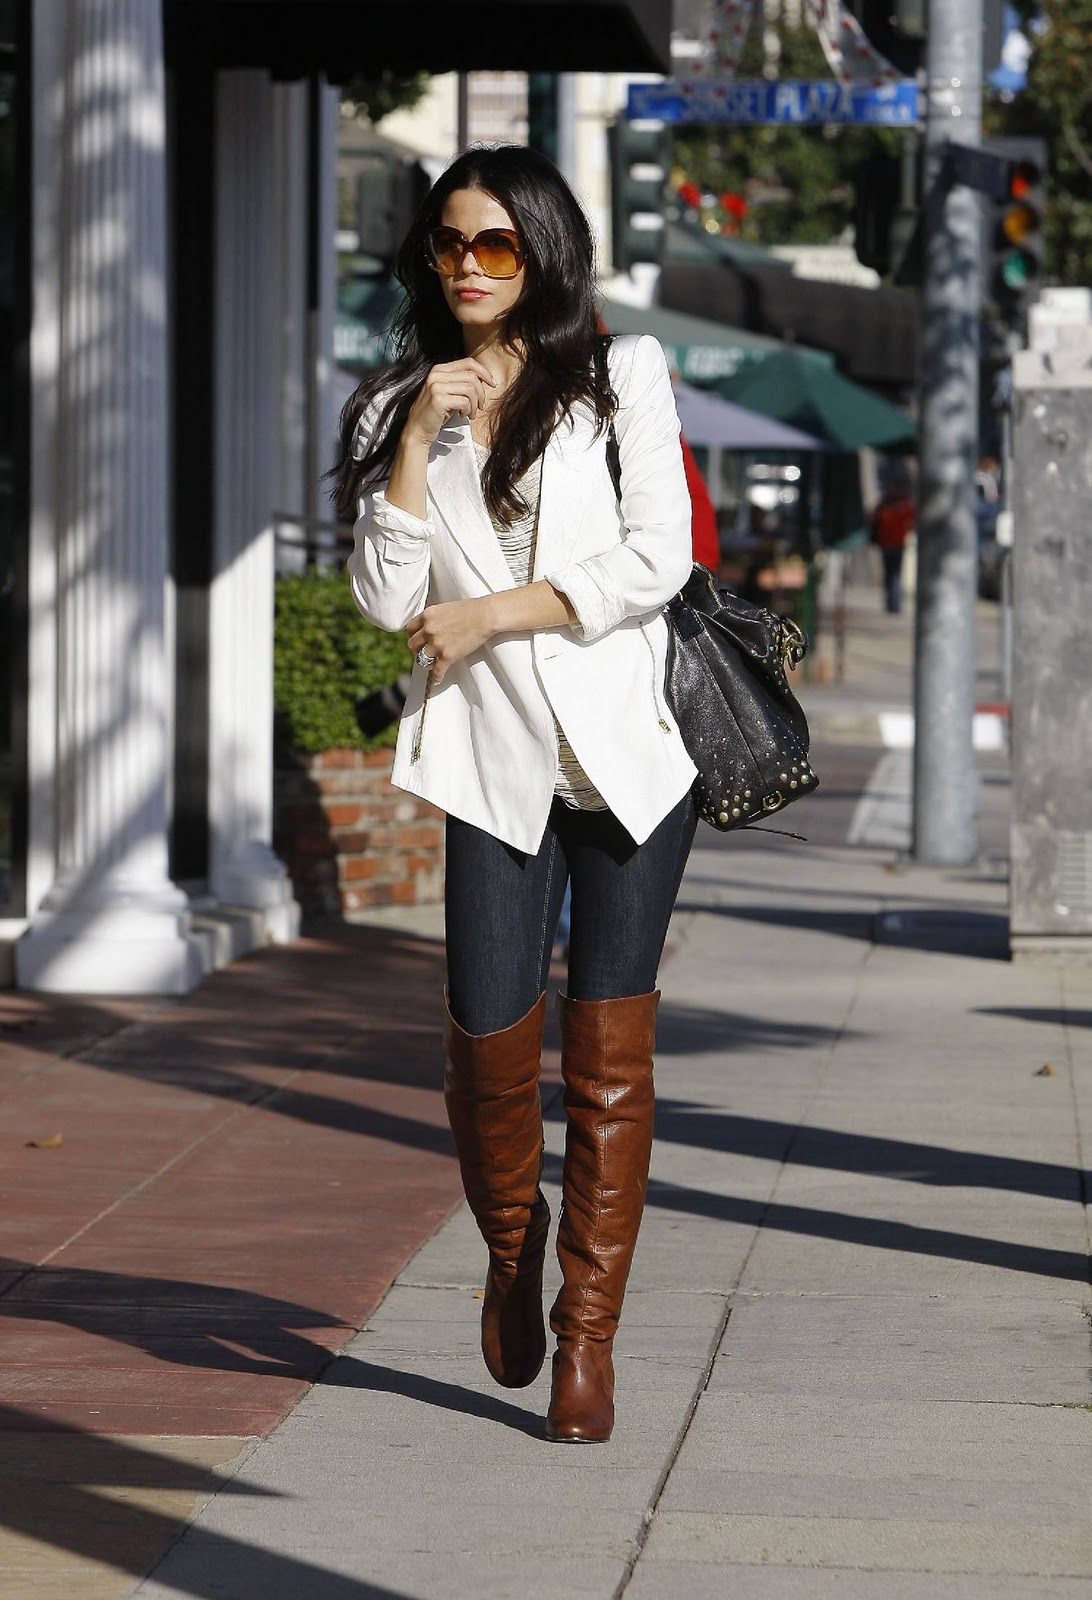 jeans and boots more celebrities in boots. Black Bedroom Furniture Sets. Home Design Ideas